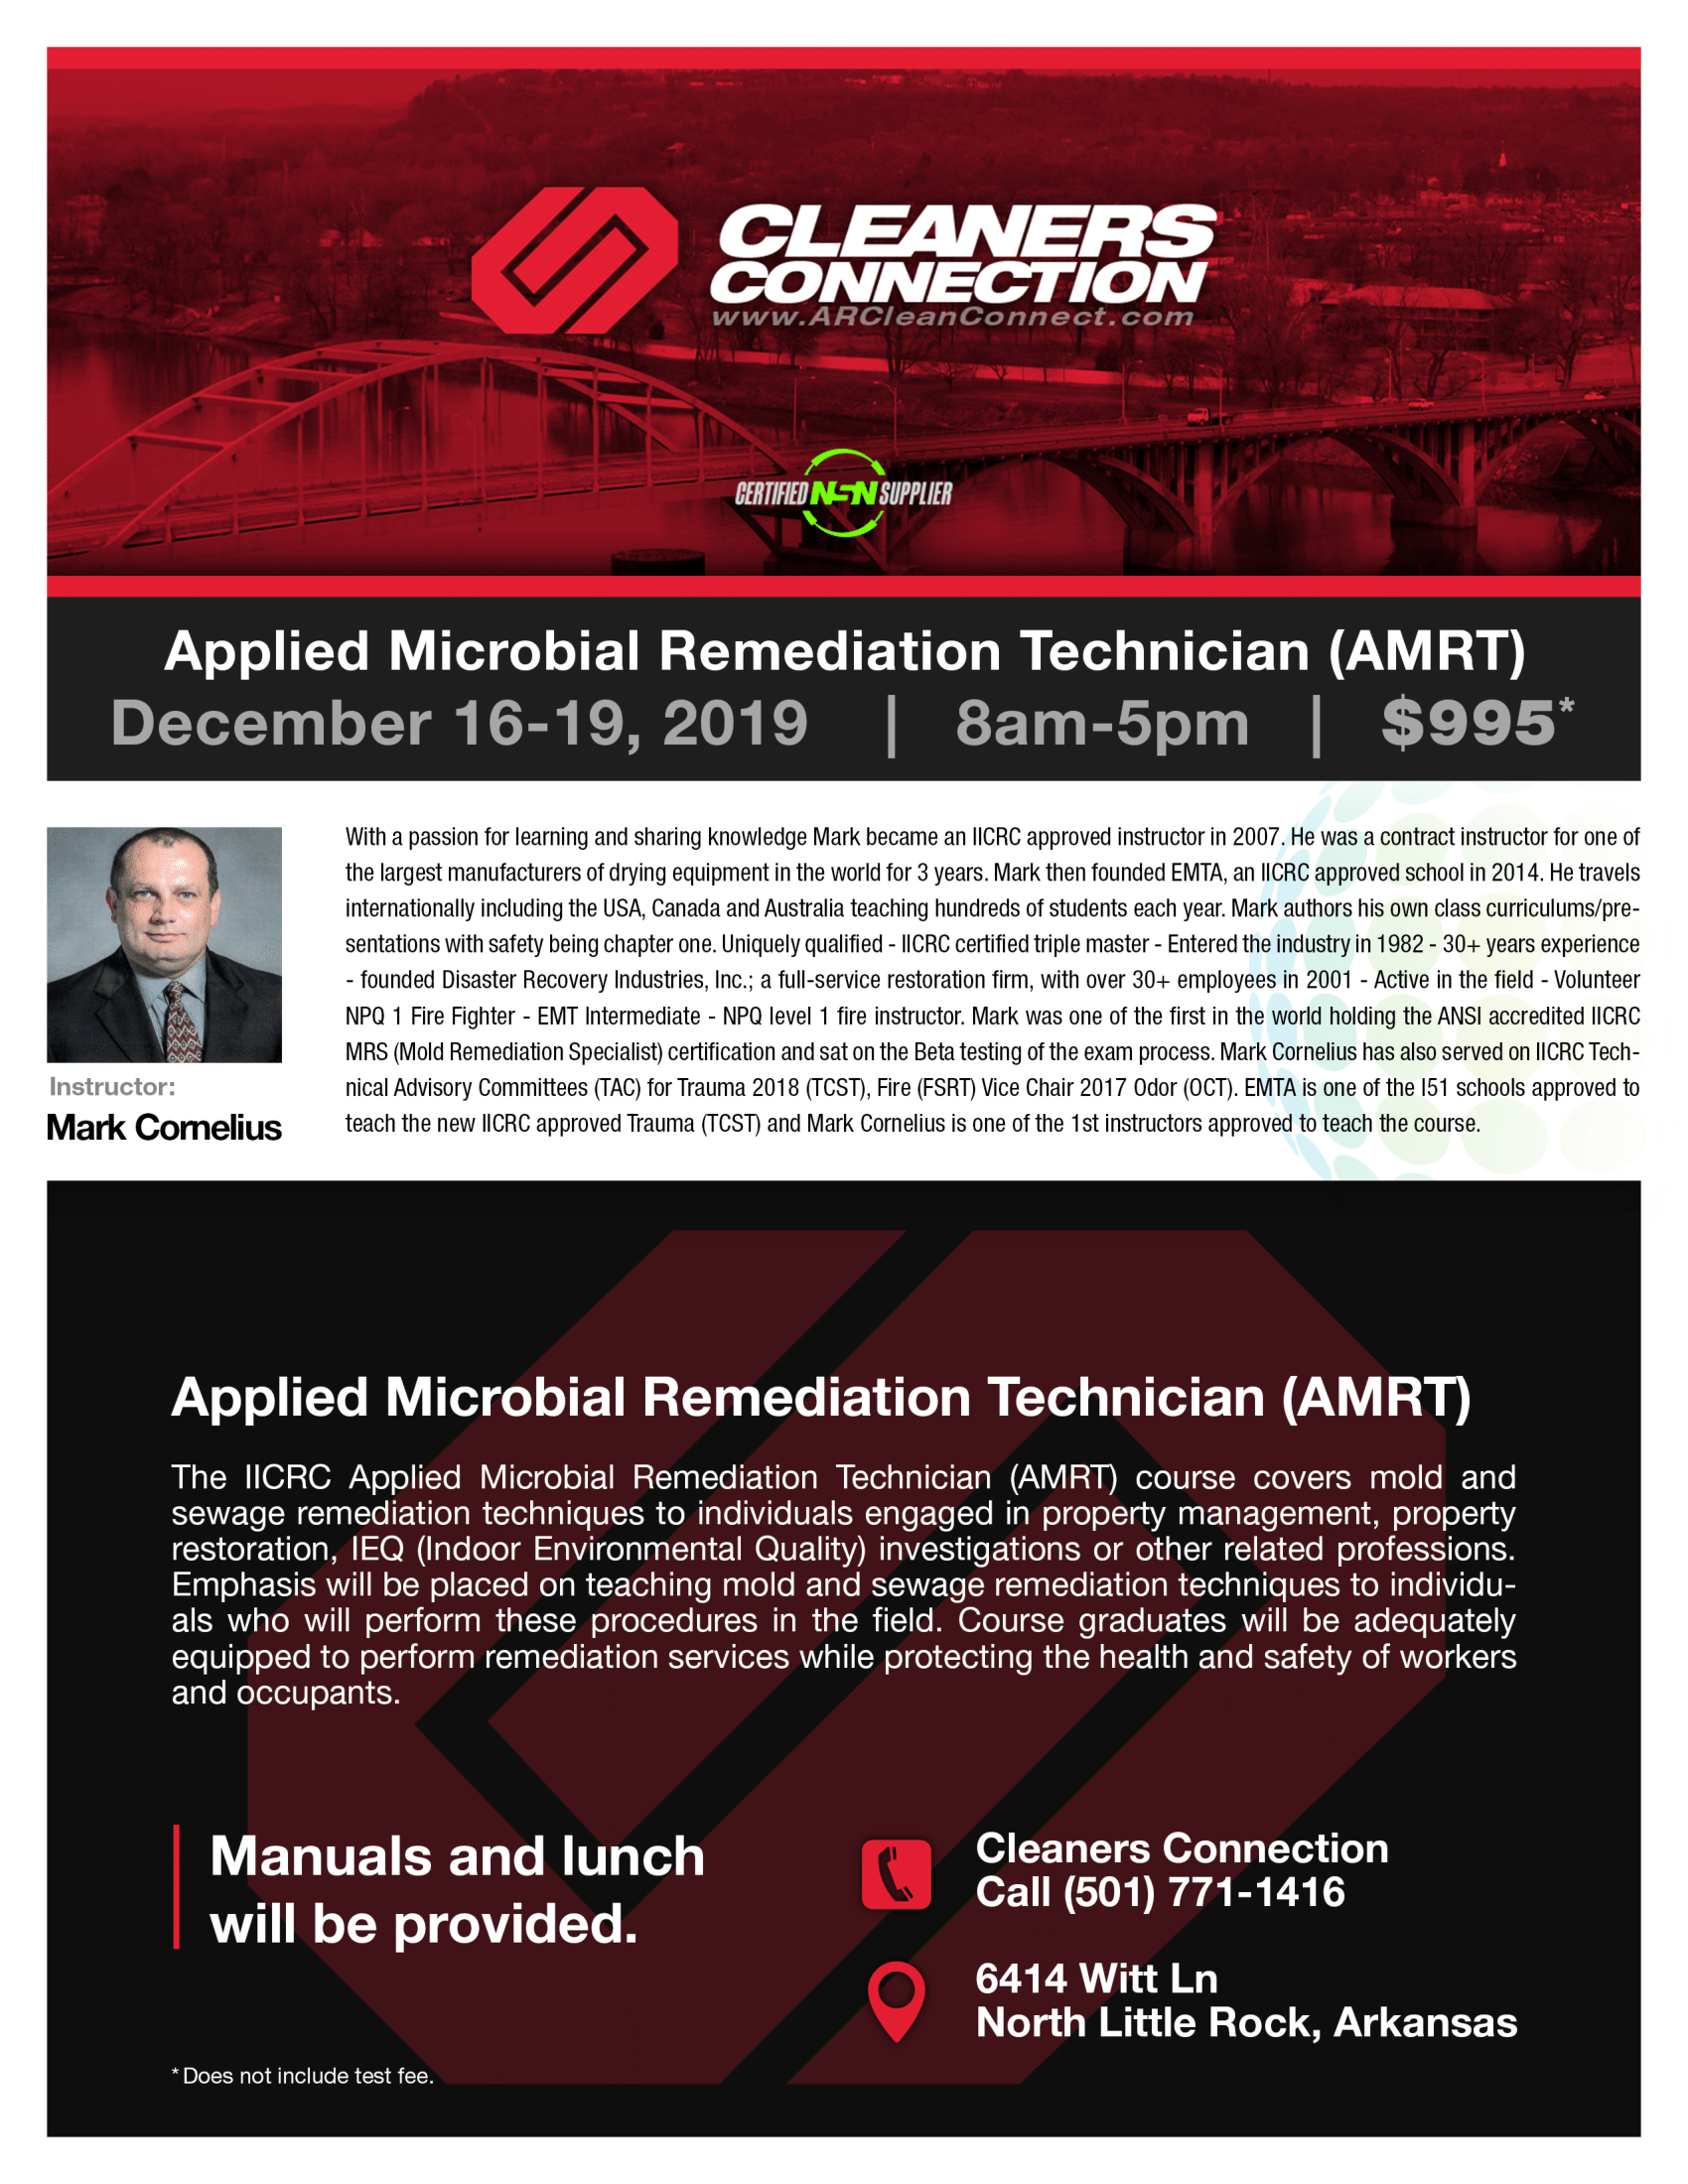 Applied Microbial Remediation Technician (AMRT) Course 12/16/19 to 12/19/19 SOLD OUT SCHOOL-AMRT